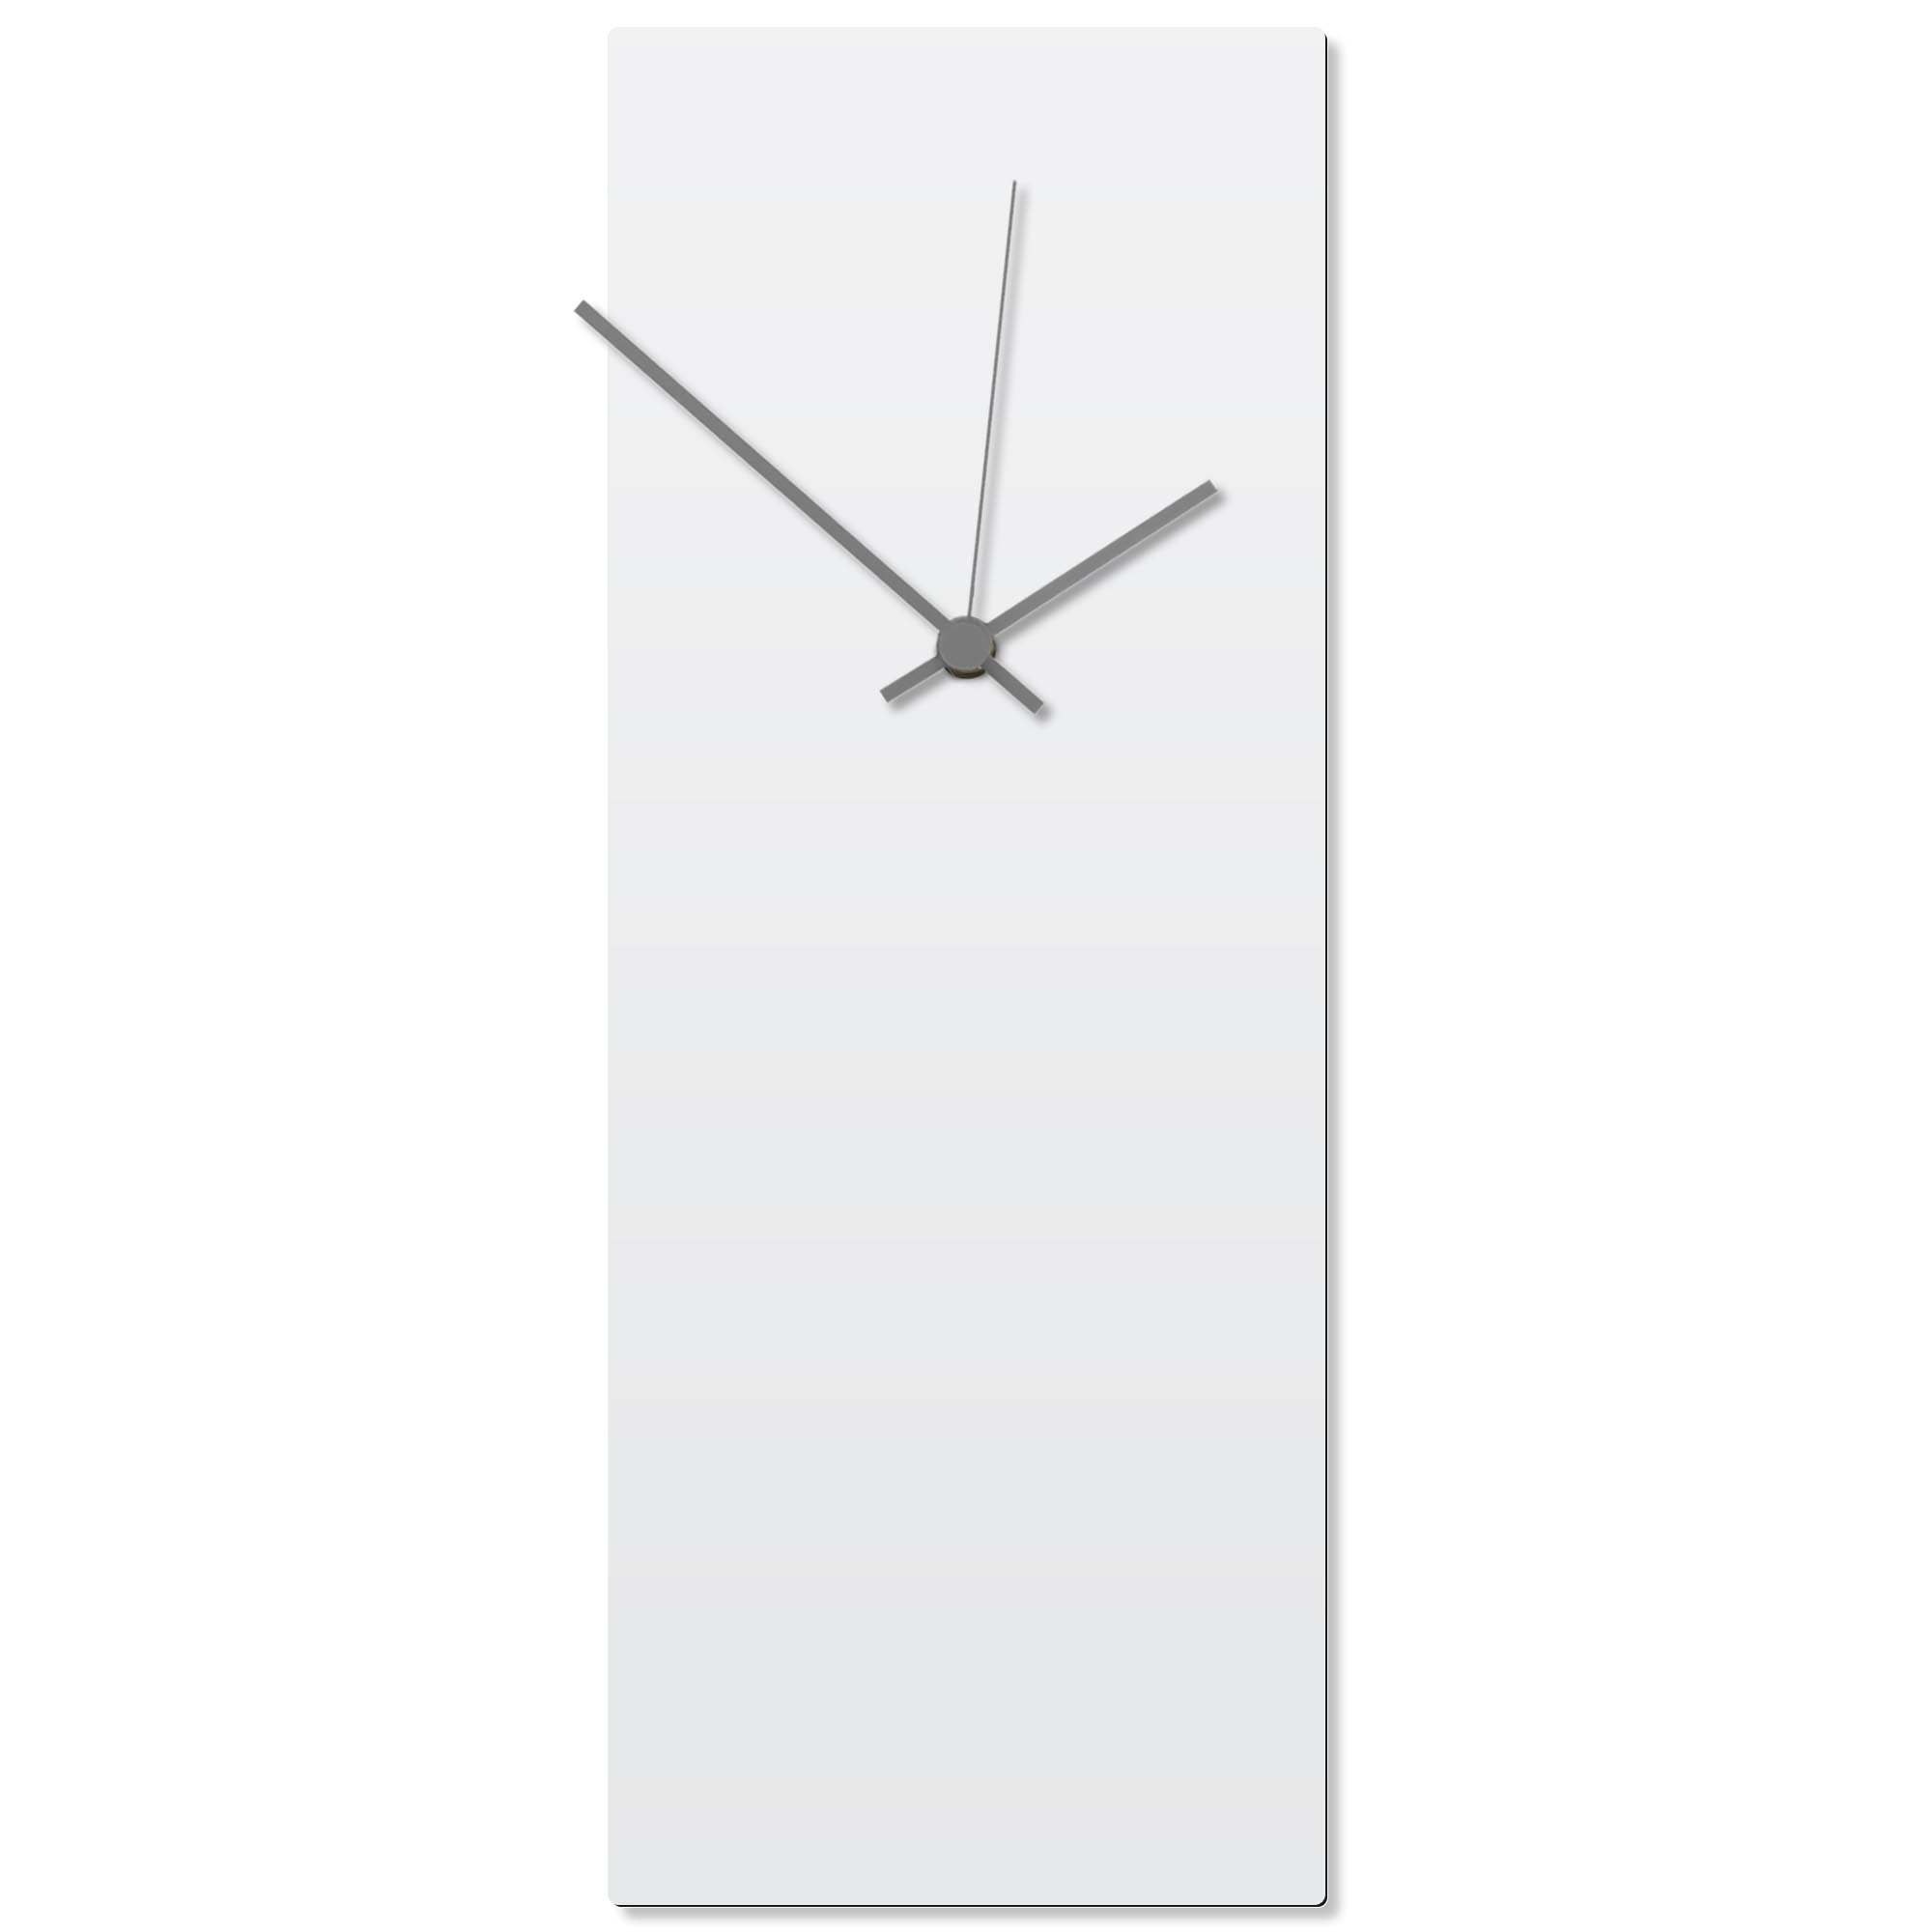 Whiteout Grey Clock Large 8.25x22in. Aluminum Polymetal